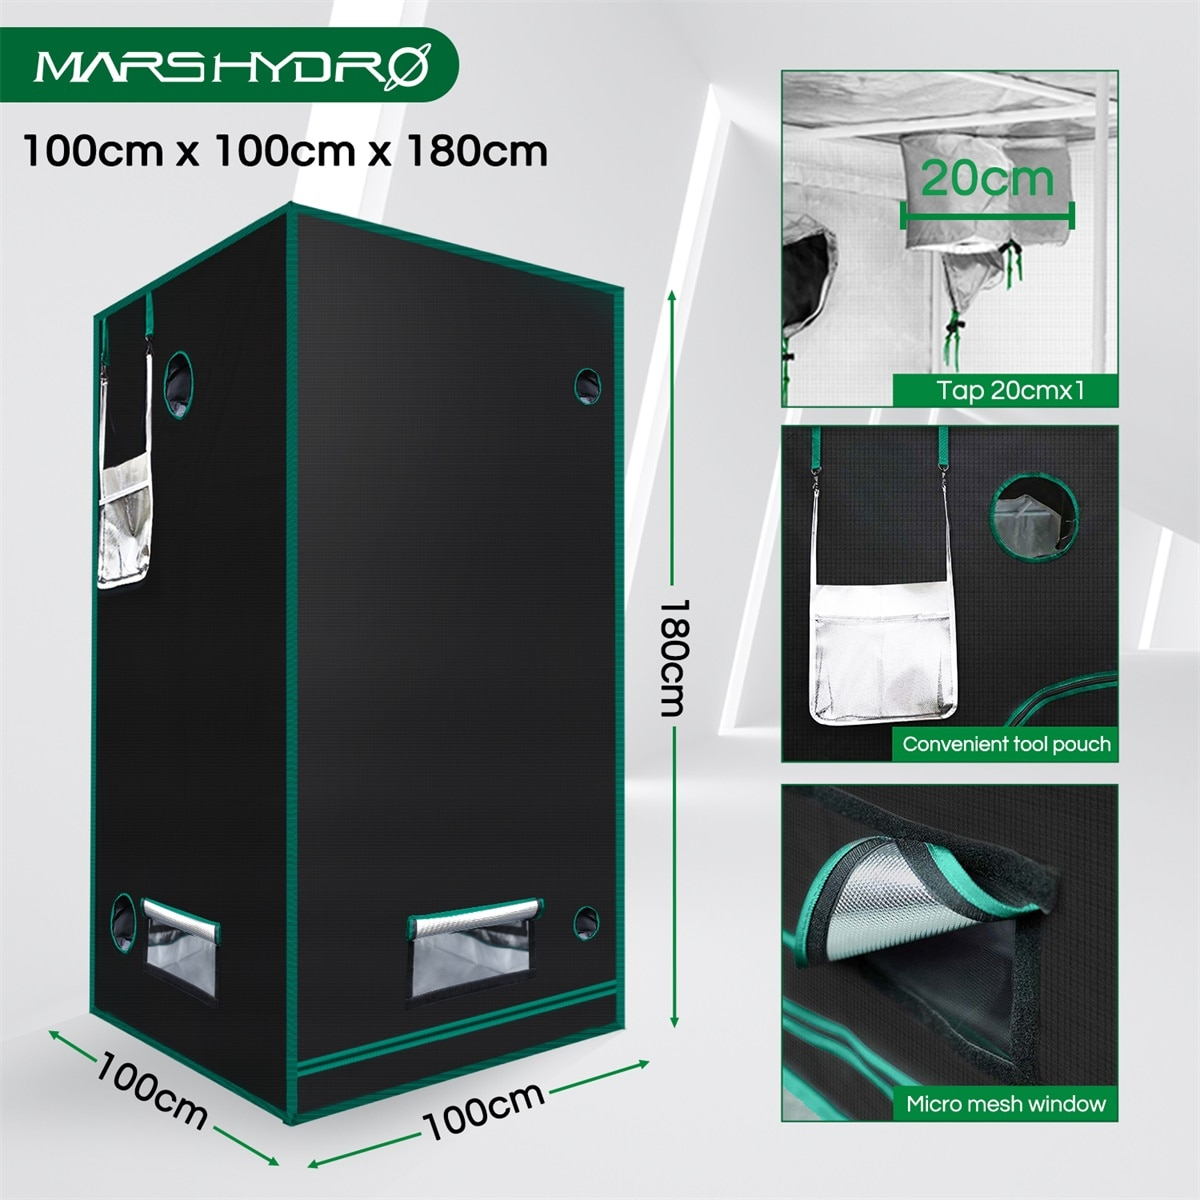 Marshydro 100x100x180cm Grow Tent 1680D indoor garden hydroponic system plant led greenhouse  3'3''x3'3''x5'11'' growing tents enlarge